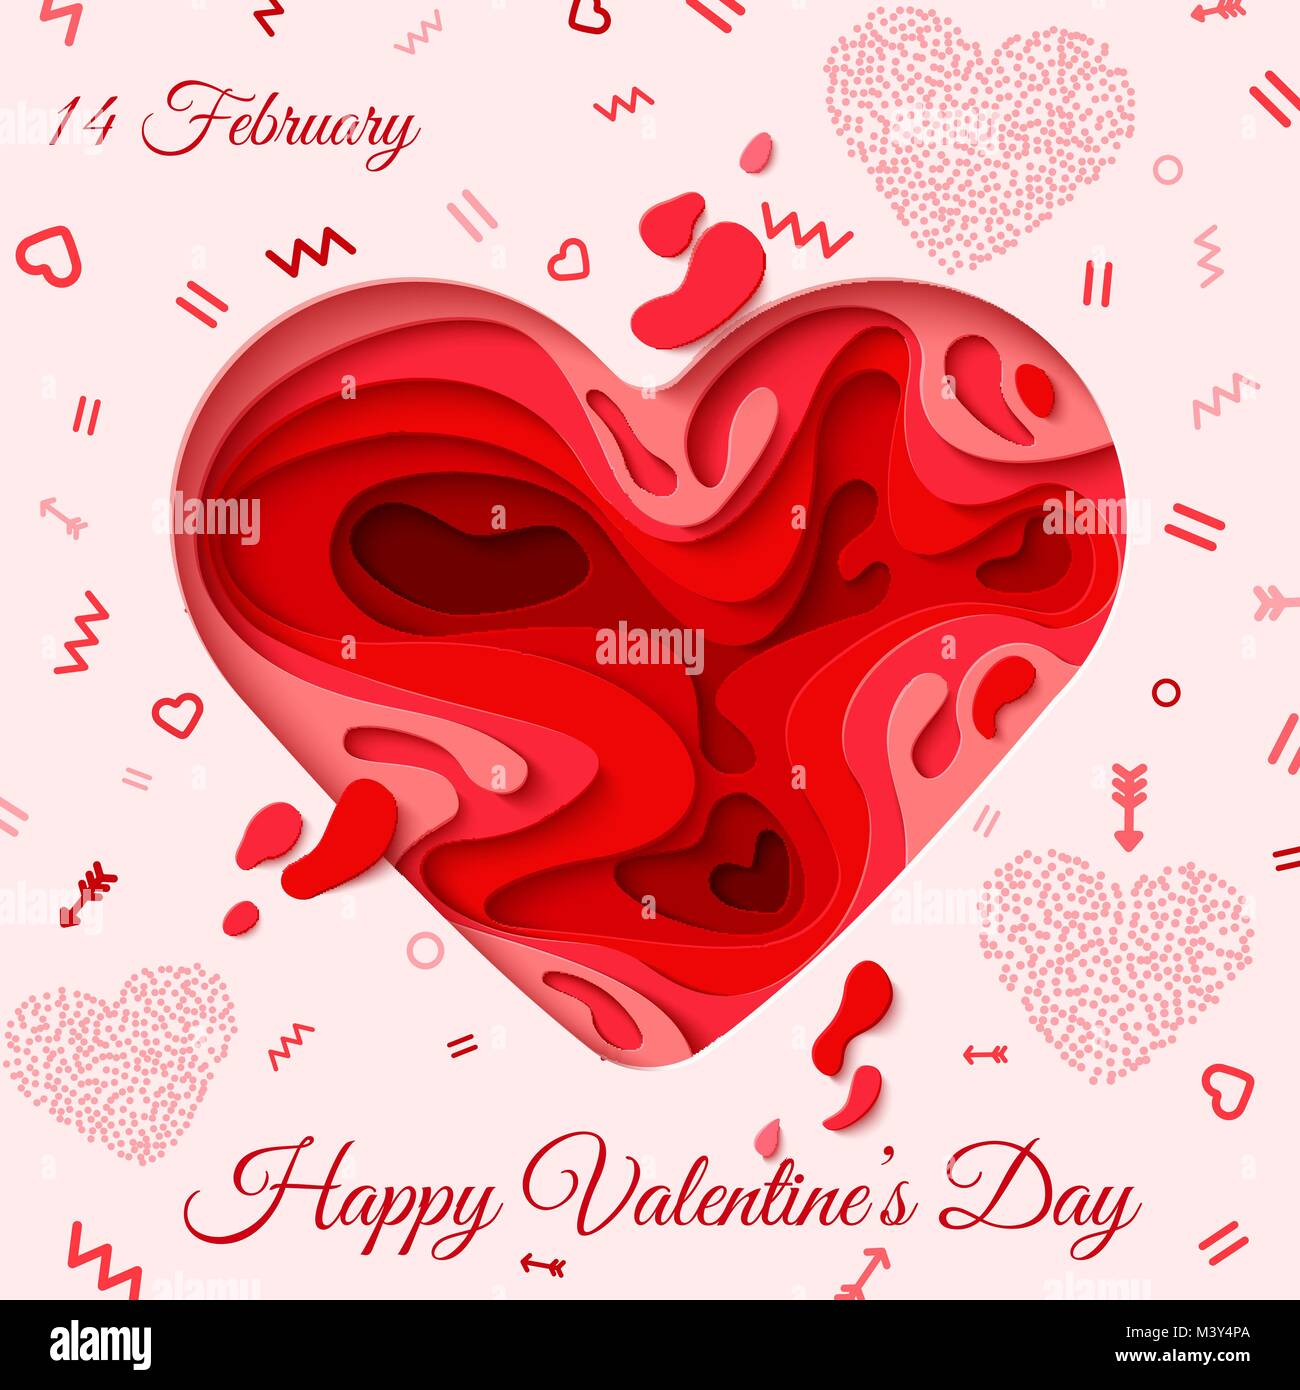 Happy Valentines Day Greeting Card 3d Paper Cut Heart Concept